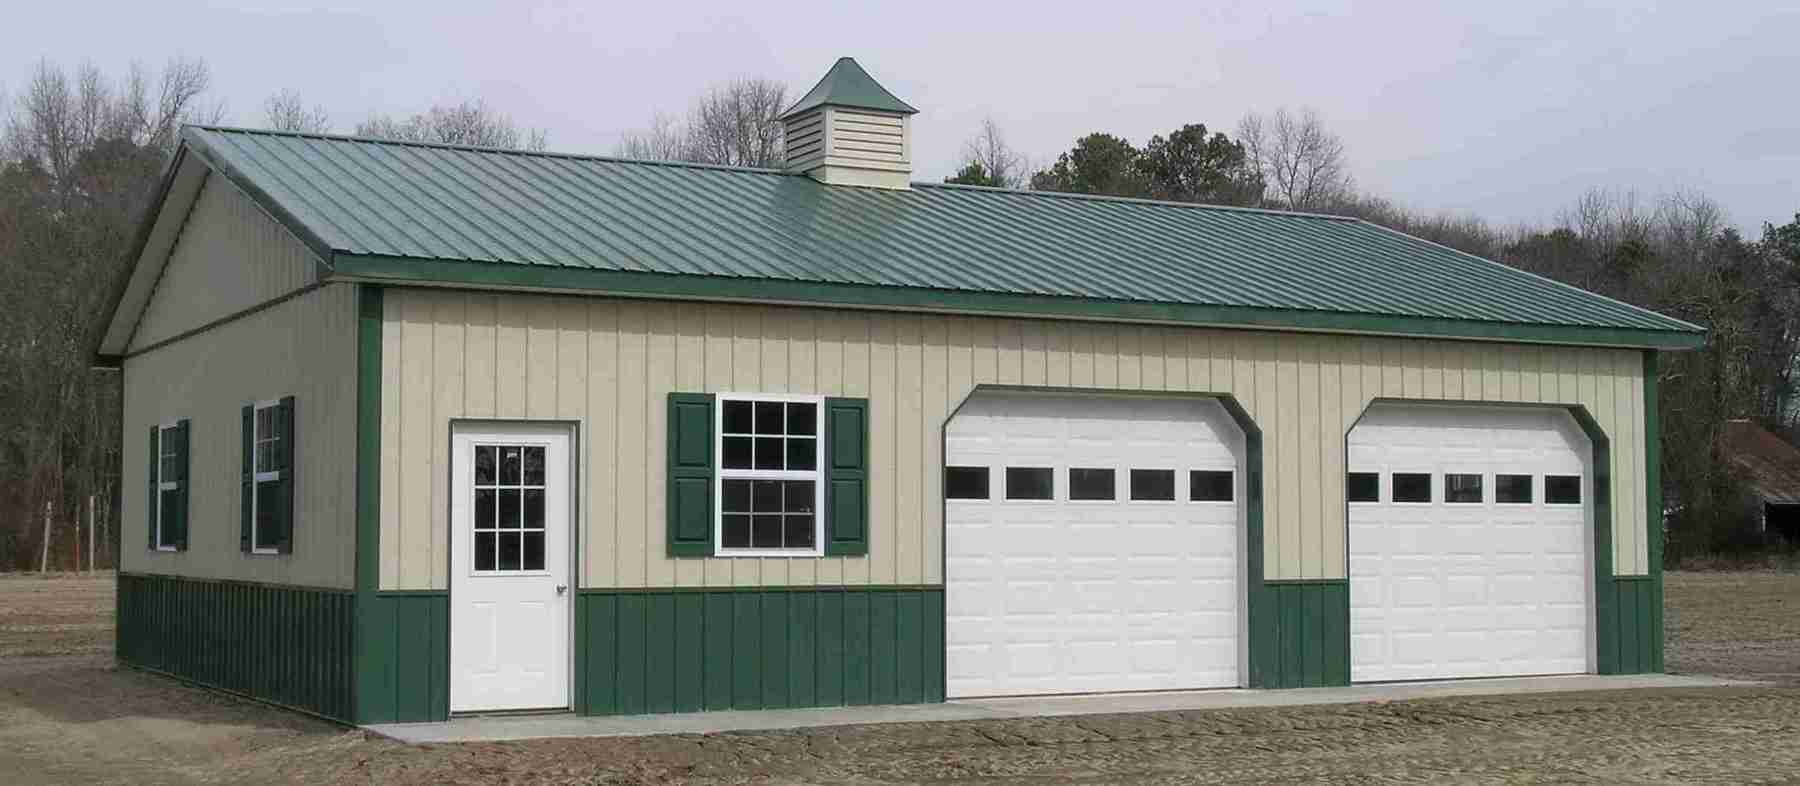 Menards pole barn kit joy studio design gallery best Garage barn